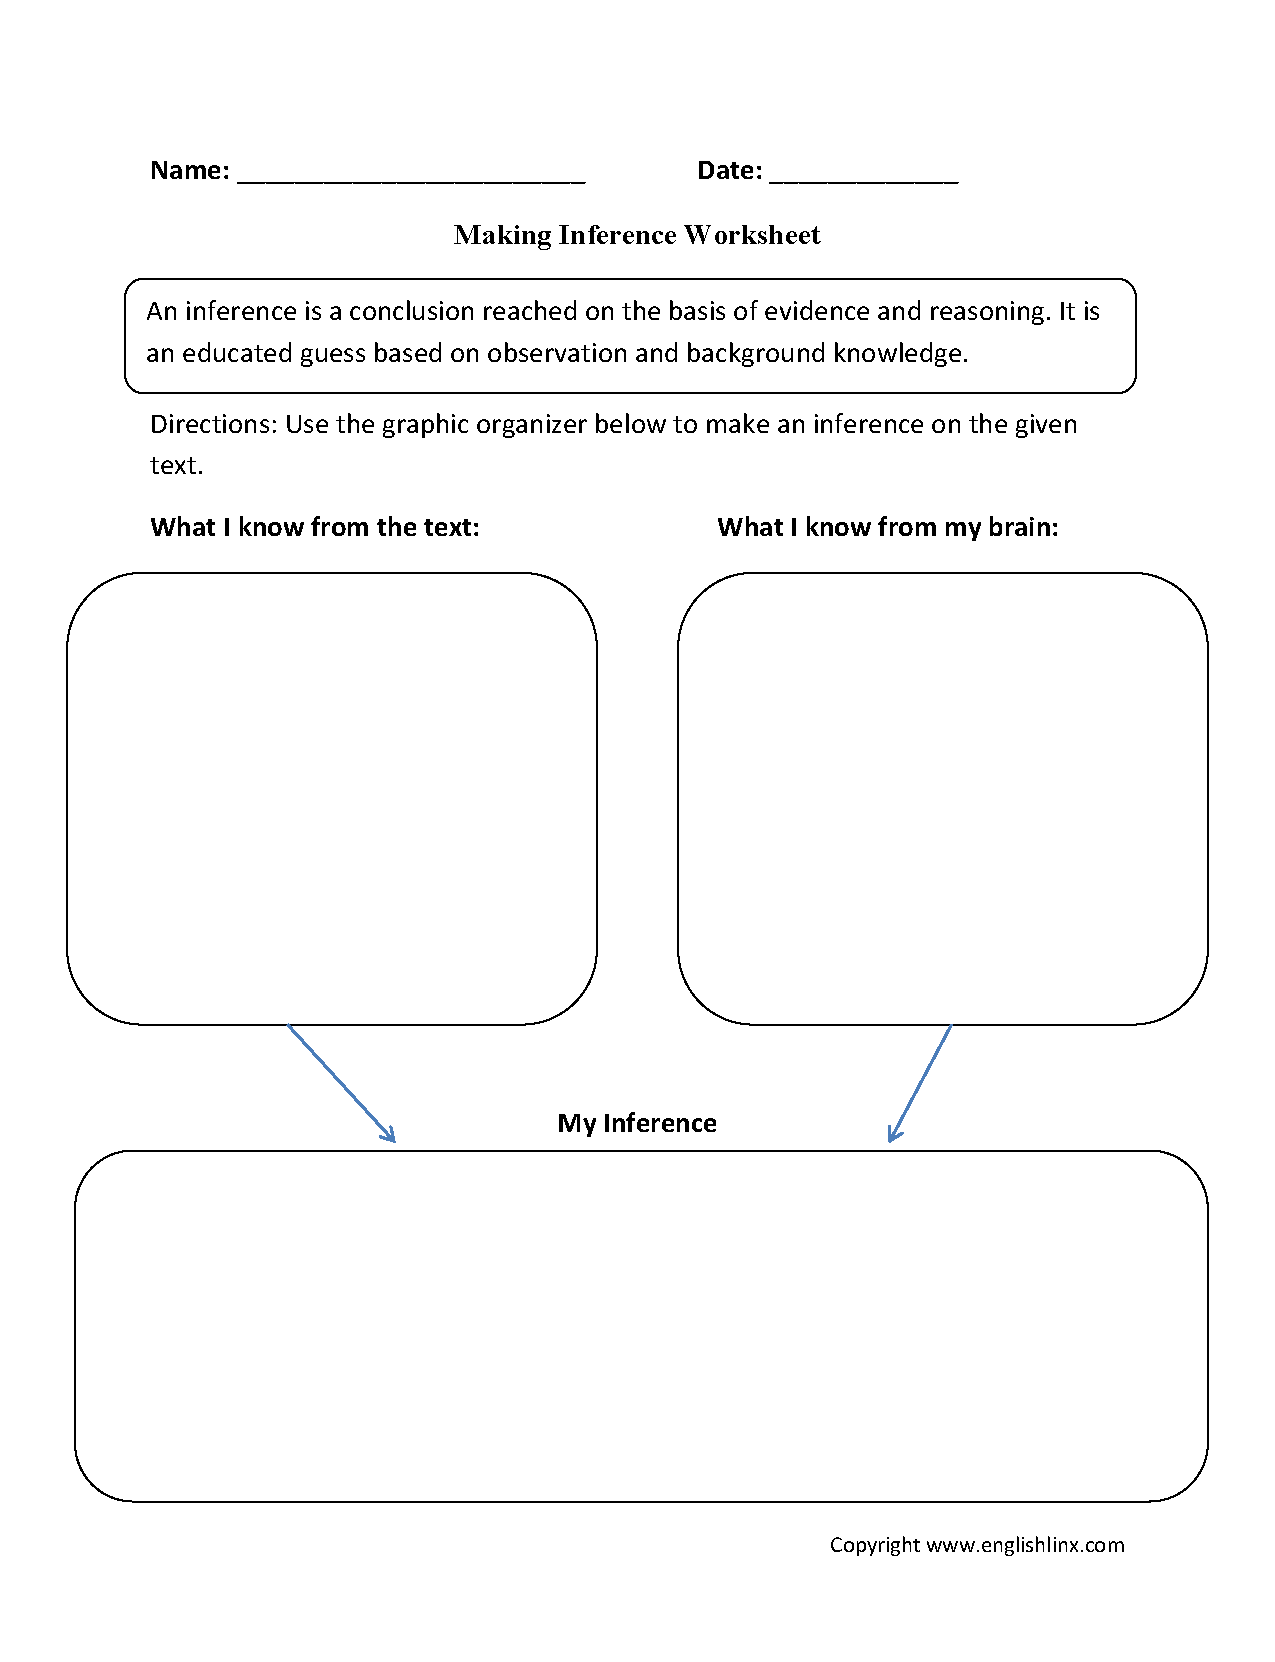 17 Best Images of Second Grade Making Inferences Worksheets  Inference Graphic Organizer